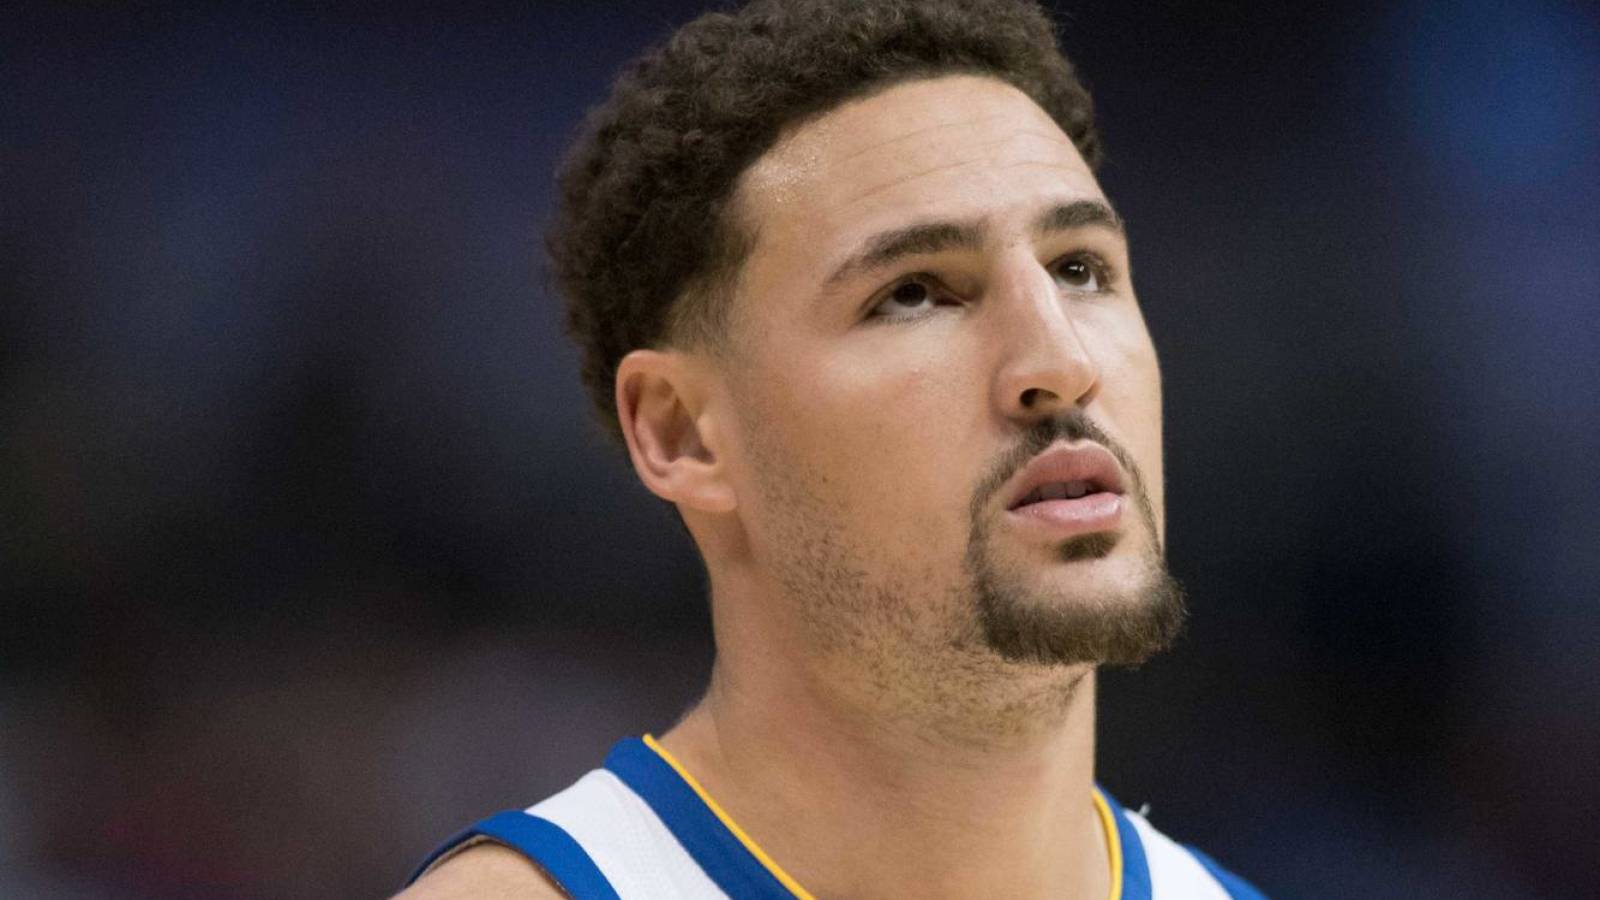 Klay Thompson Credits The Beach For Helping Him Get In Better Shape